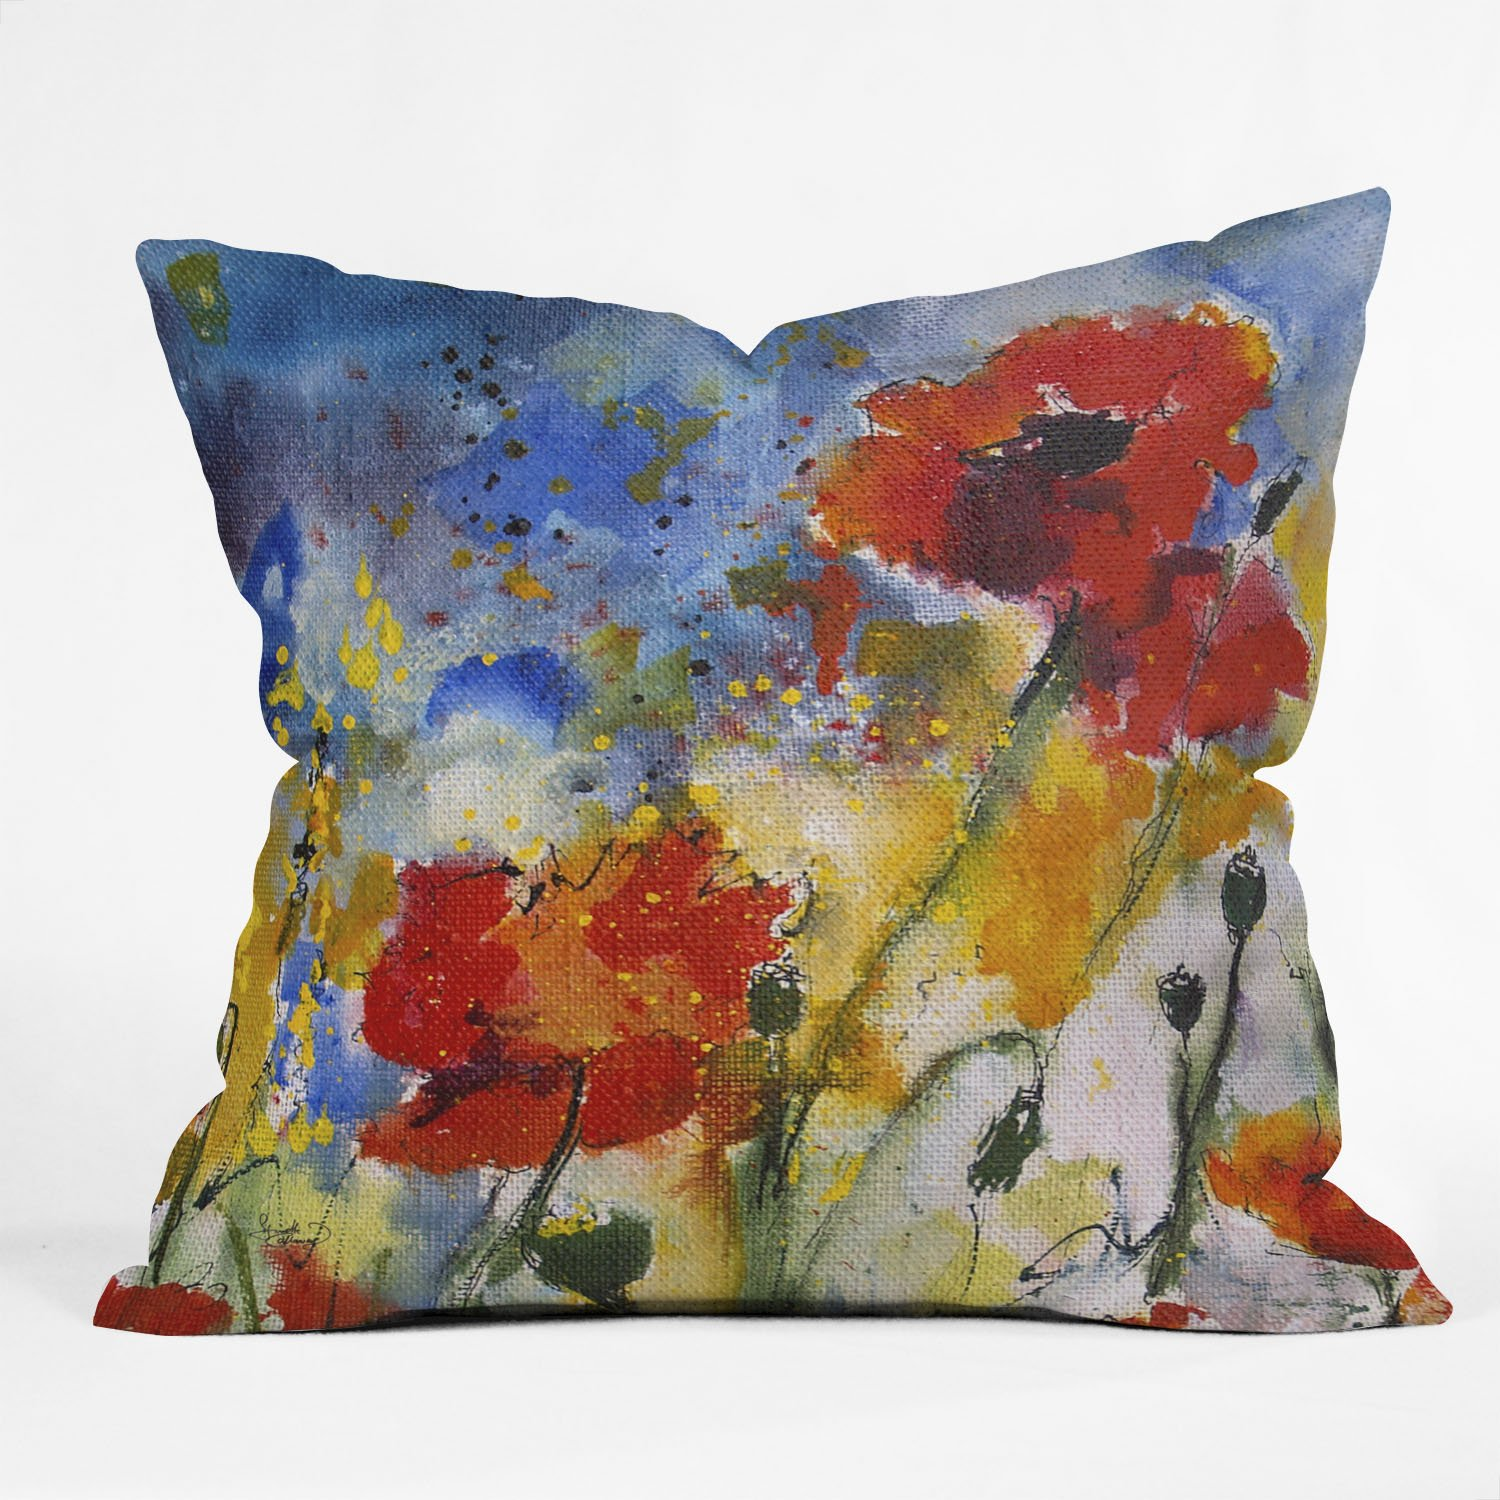 Deny Designs Ginette Fine Art Wildflowers Poppies 2 Throw Pillow, 16 x 16